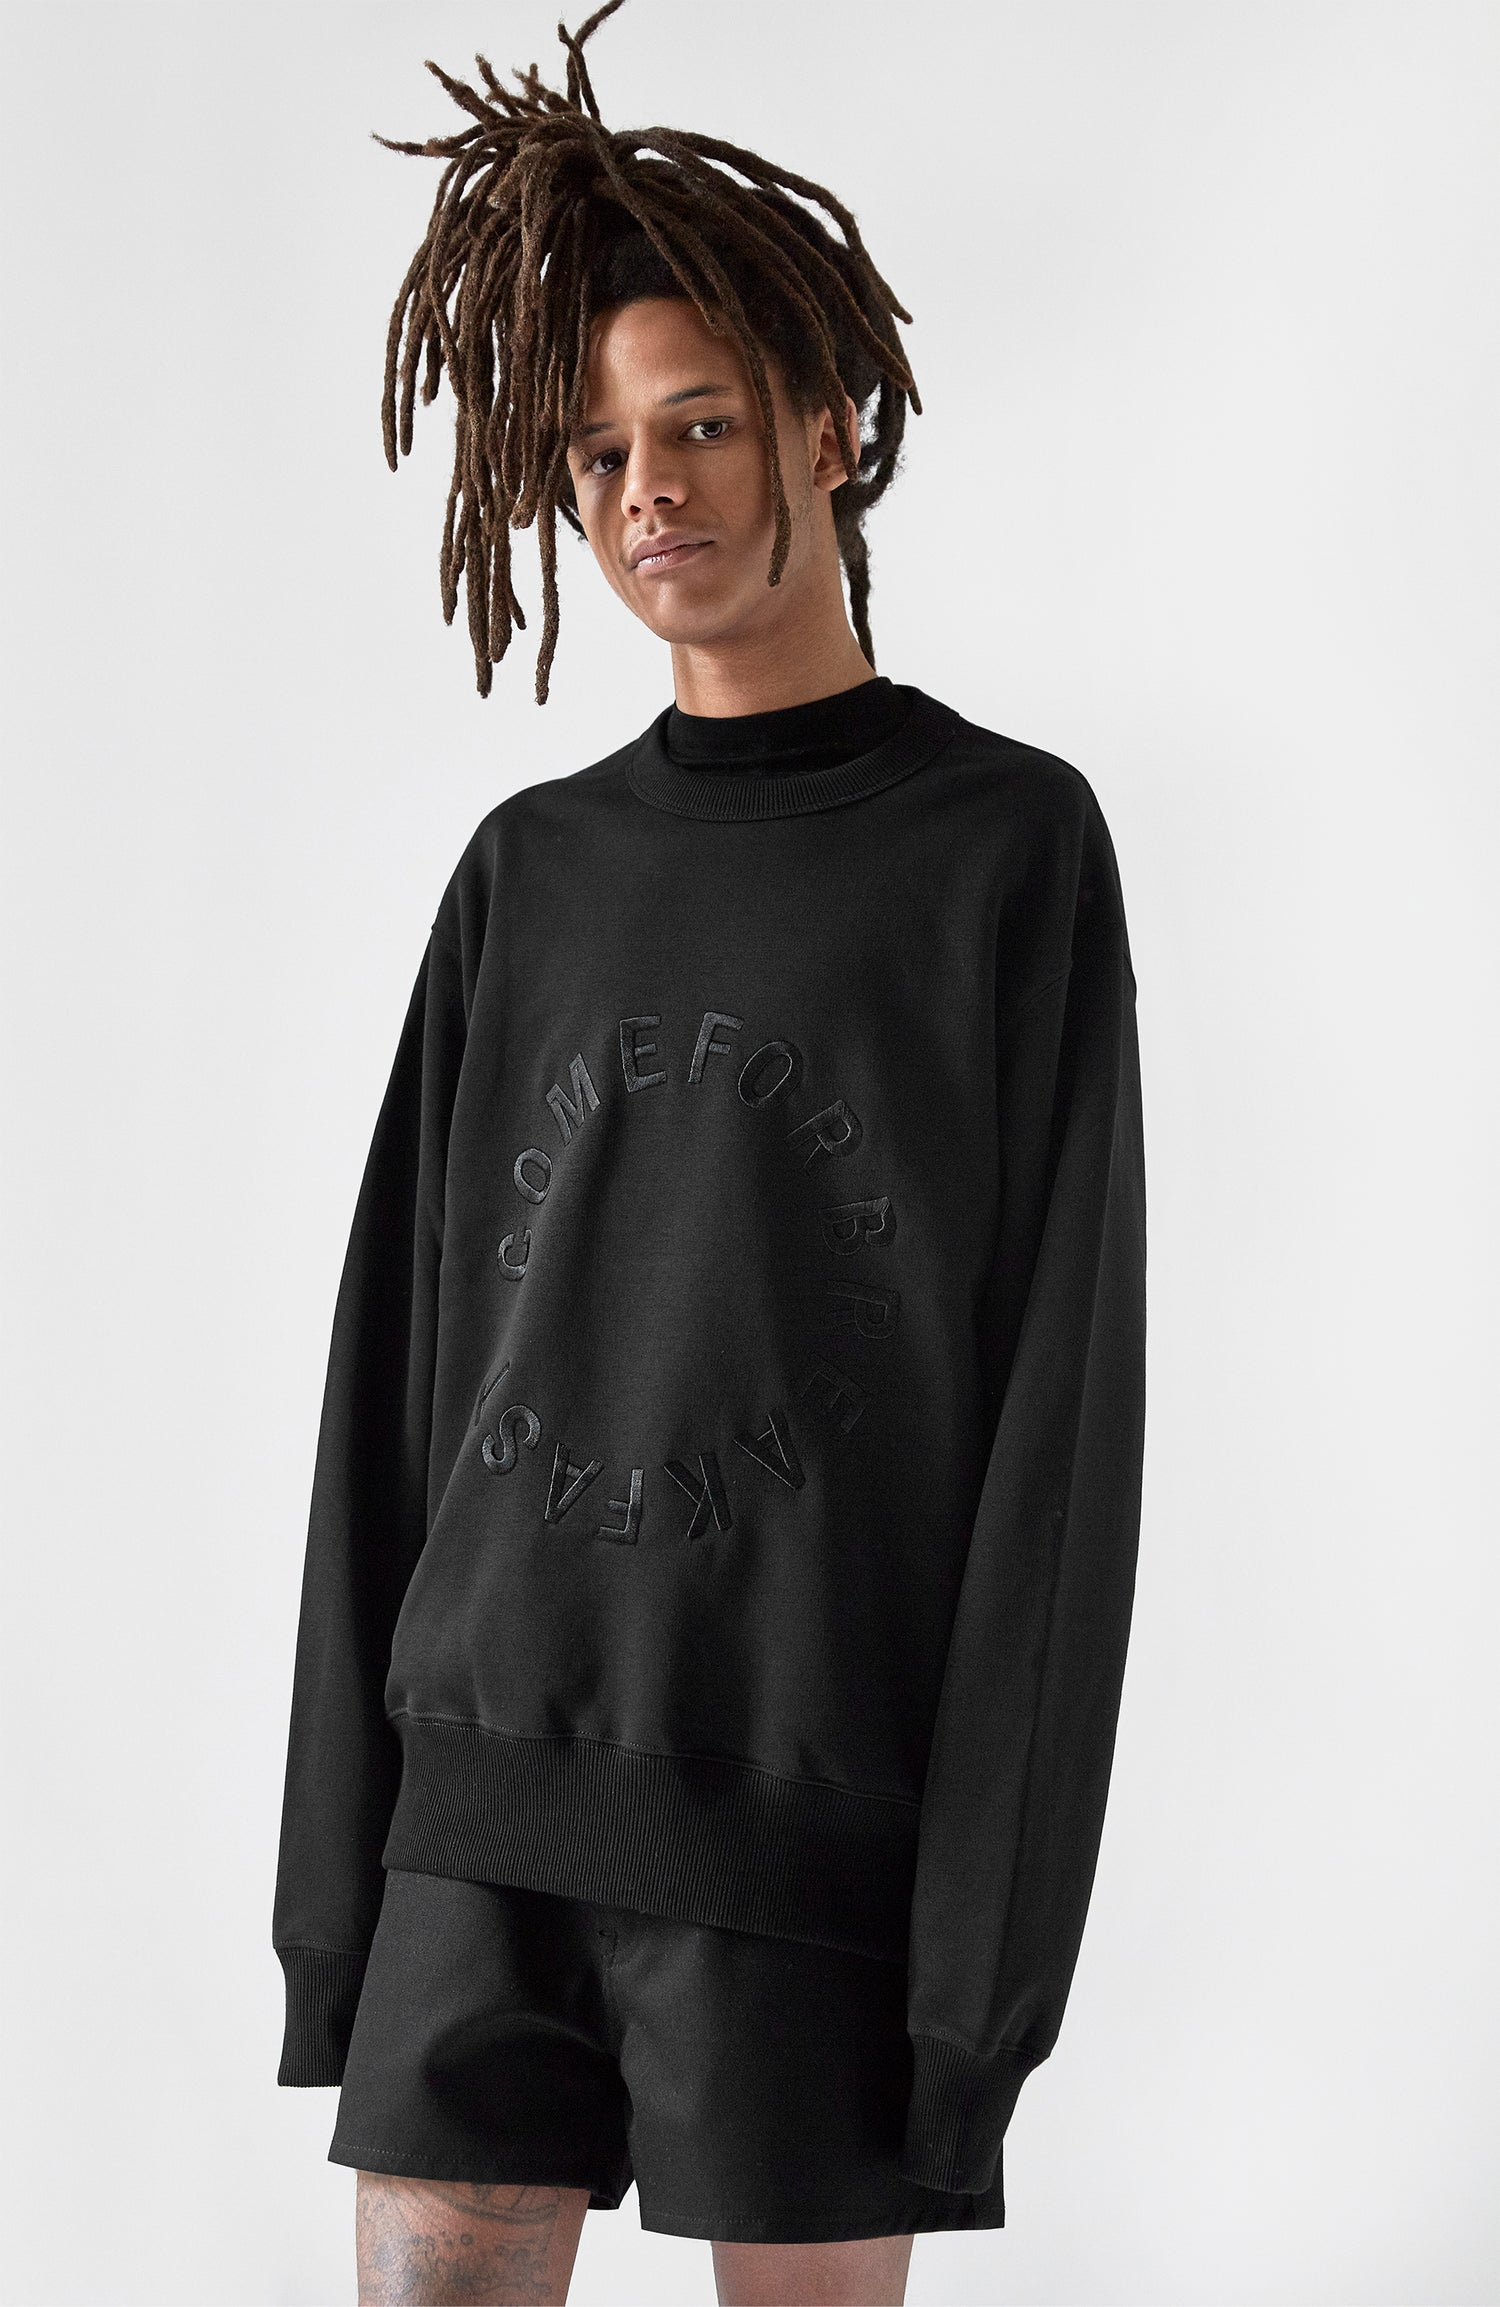 Image of SWEATSHIRT WITH BLACK EMBROIDERED ROUND COMEFORBREAKFAST LOGO - MAN